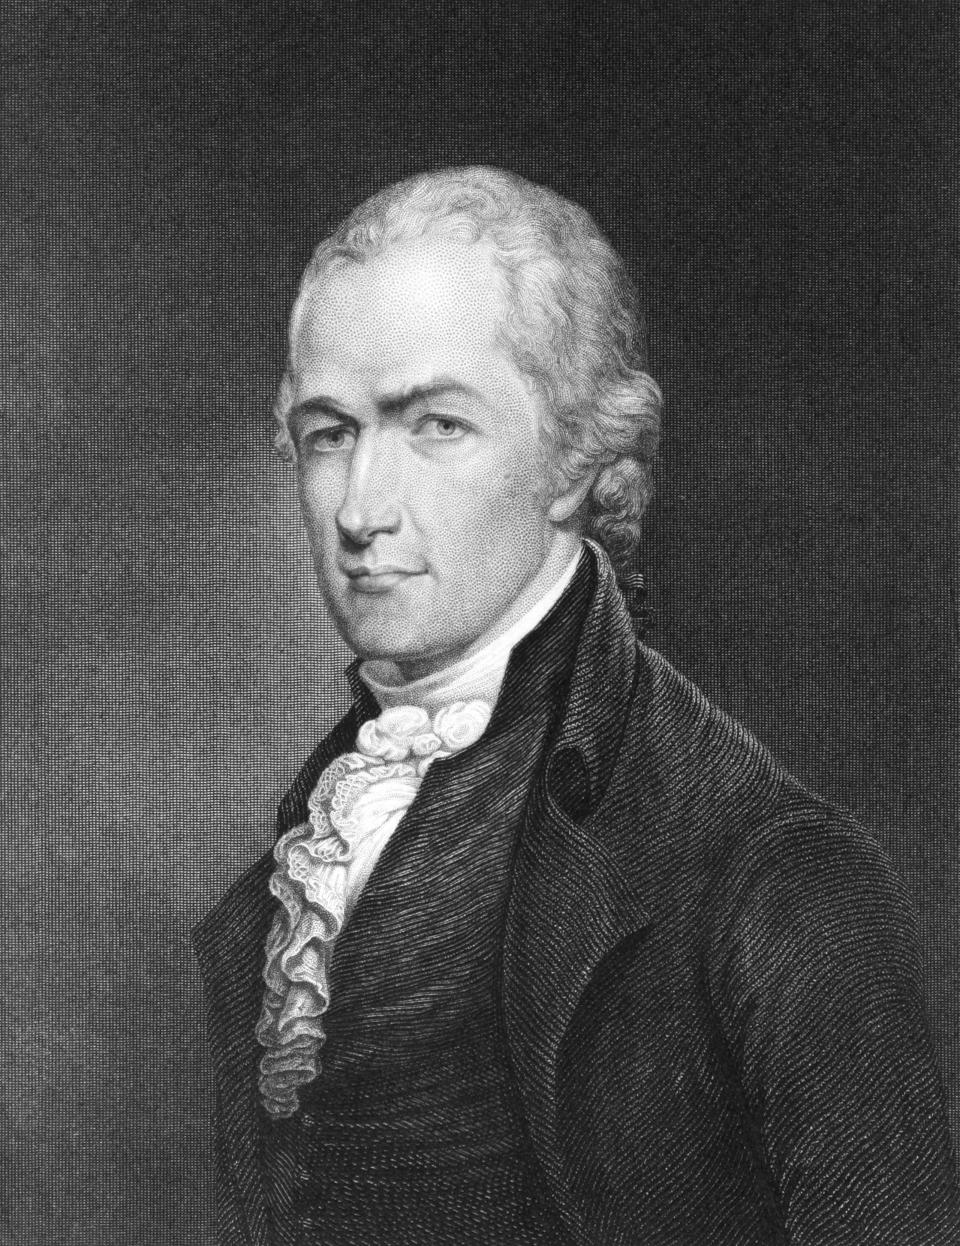 """Alexander Hamilton (1755-1804) on an engraving from 1835 by E. Prudhomme and published in ''National Portrait Gallery of Distinguished Americans Volume II'"""" USA,1835. (Getty Images)"""